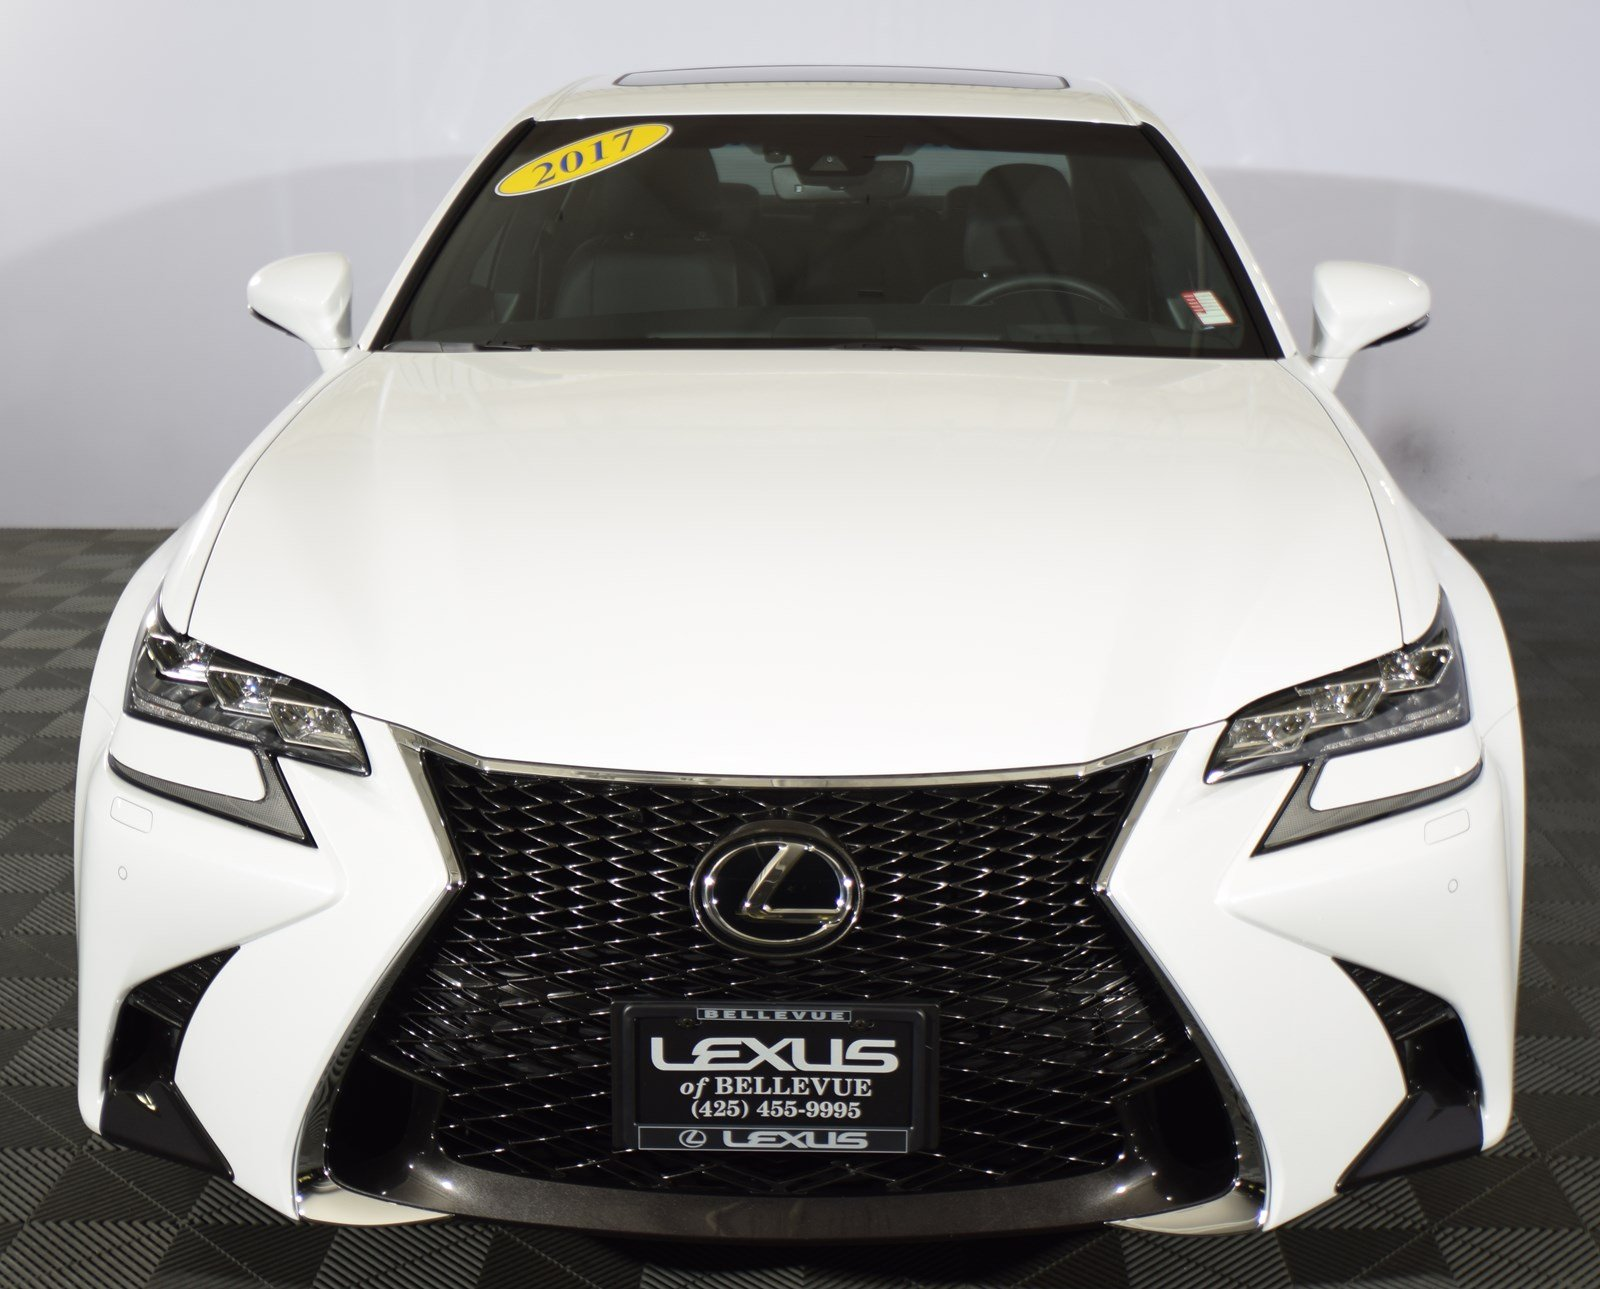 Lexus Gs F Sport In Washington For Sale ▷ Used Cars Buysellsearch